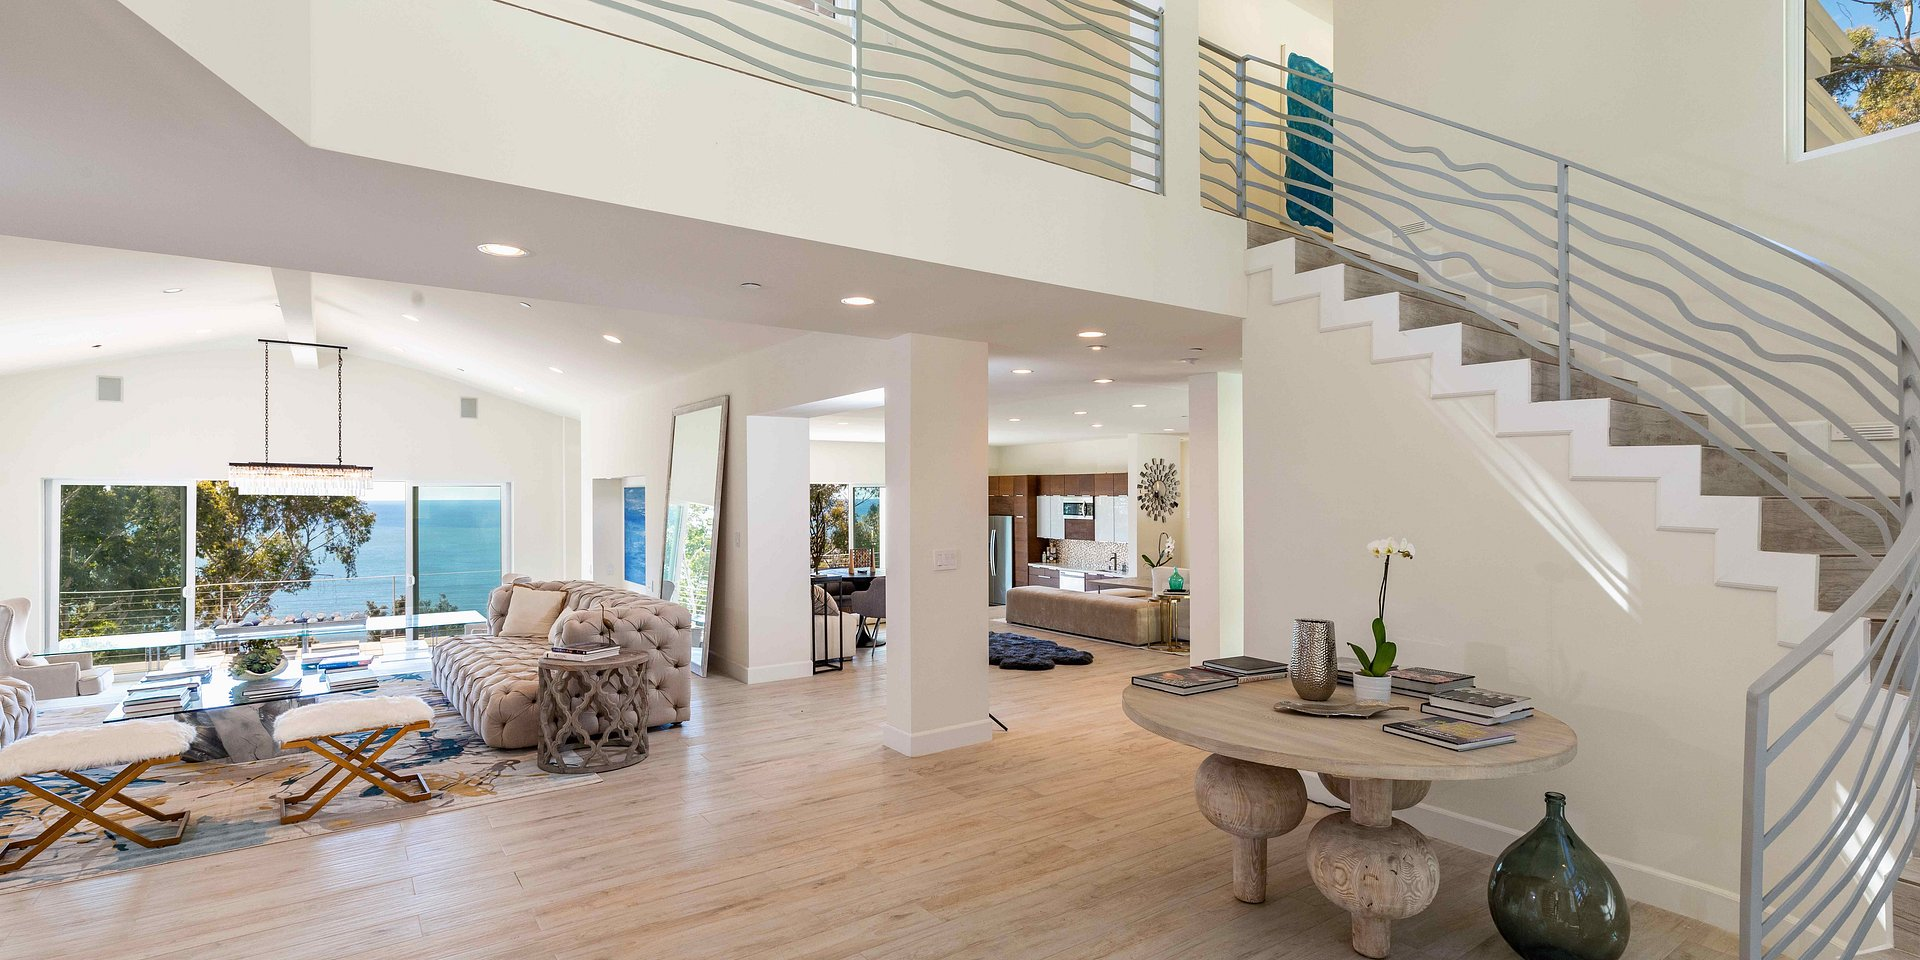 Coldwell Banker Residential Brokerage Lists Malibu Property for $5.25 Million